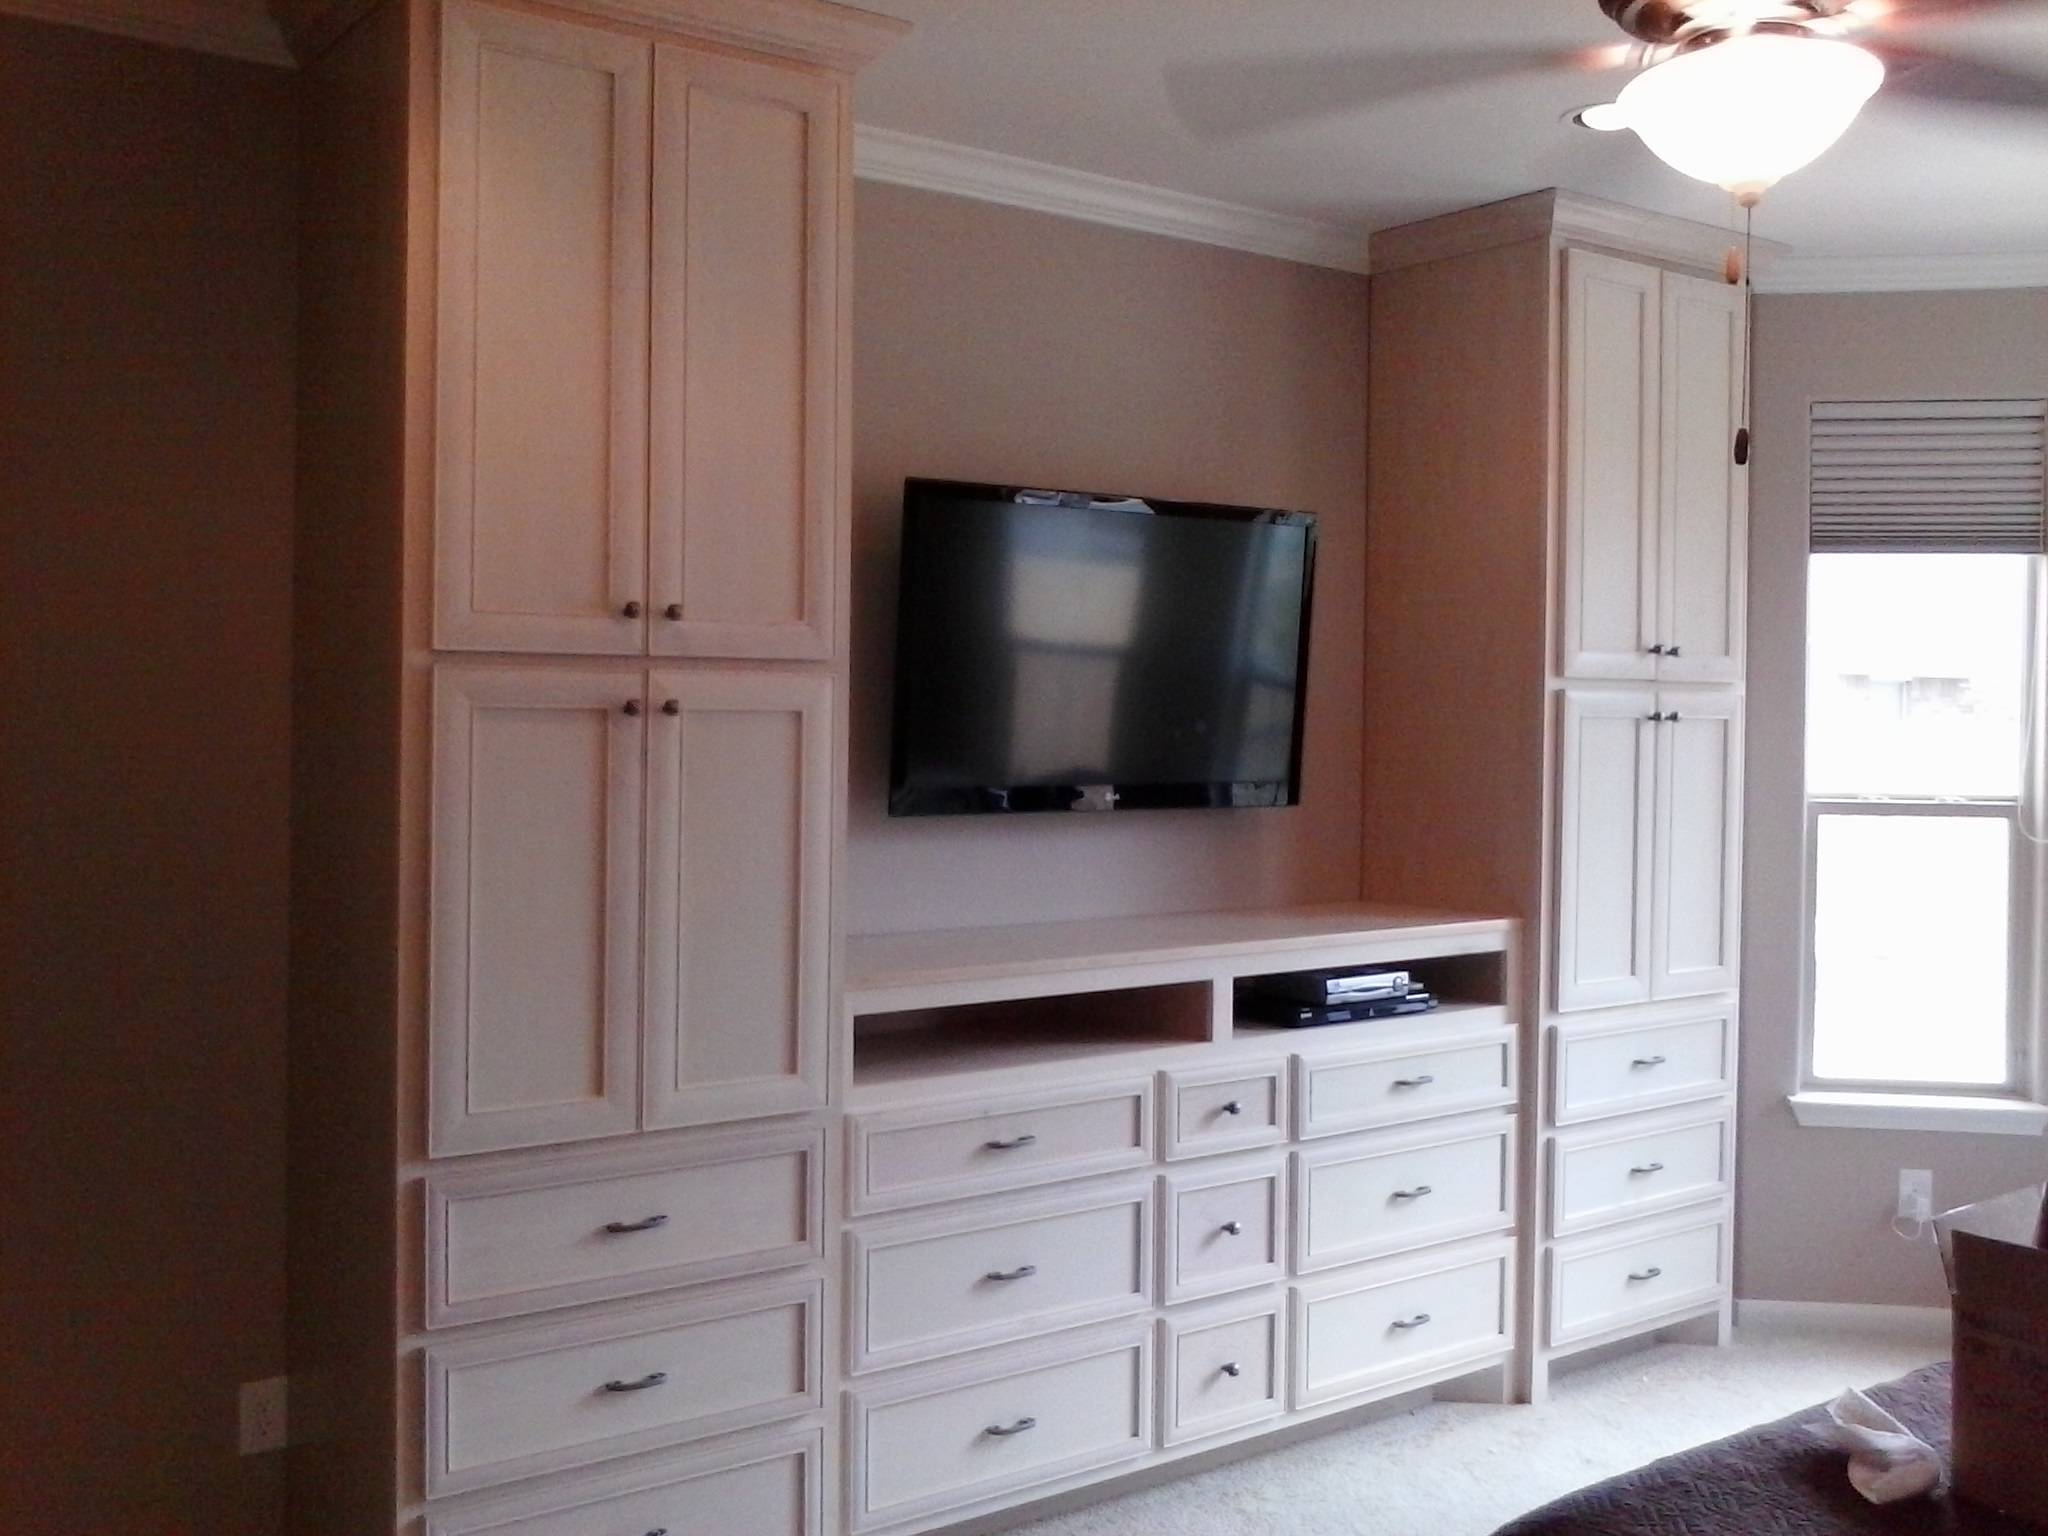 Bedrooms ~ Middle Bedroom Closets And Wardrobes Interior Large pertaining to Bedroom Wardrobe Storages (Image 15 of 30)